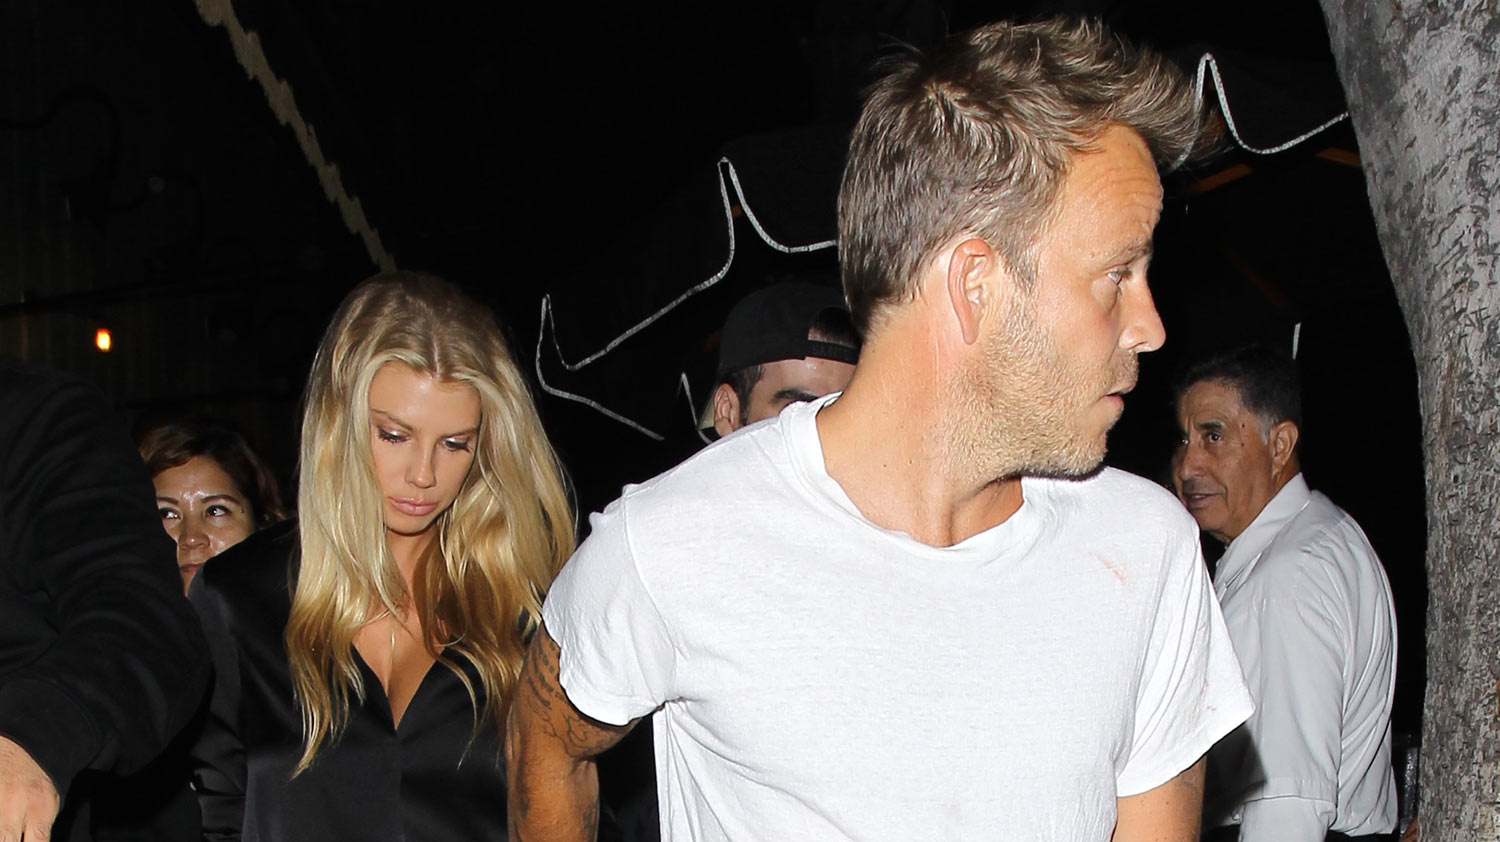 What is Charlotte McKinney Up To These Days